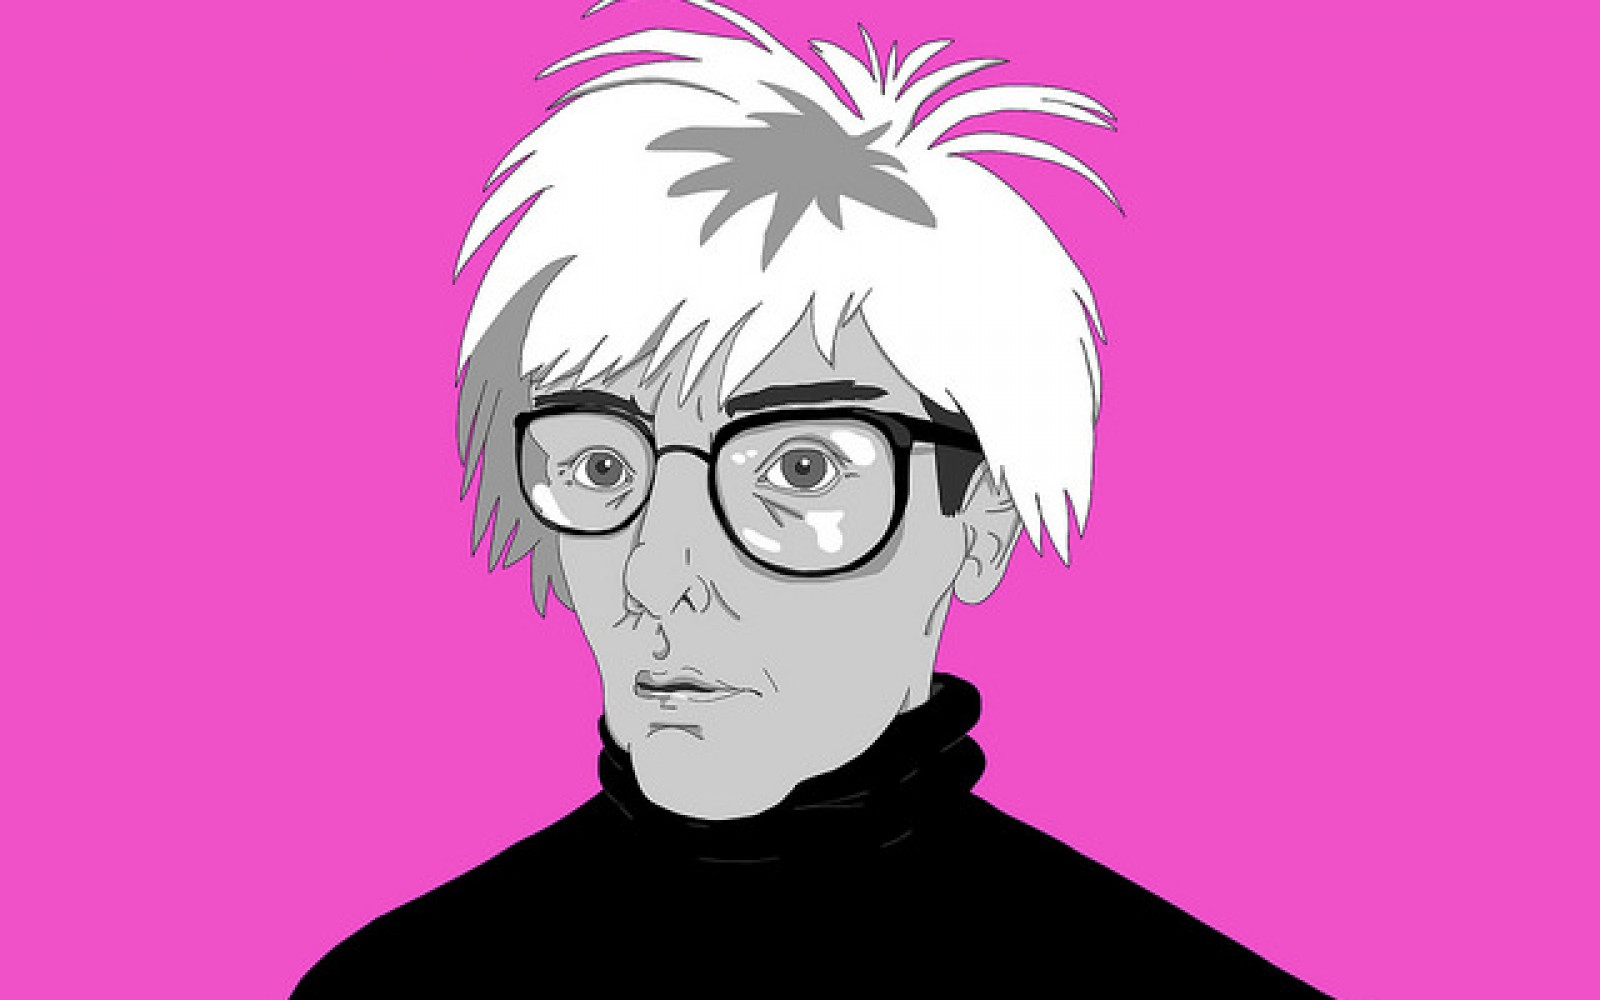 30 Of The Best Andy Warhol Quotes On Art, Sex And Fantasy